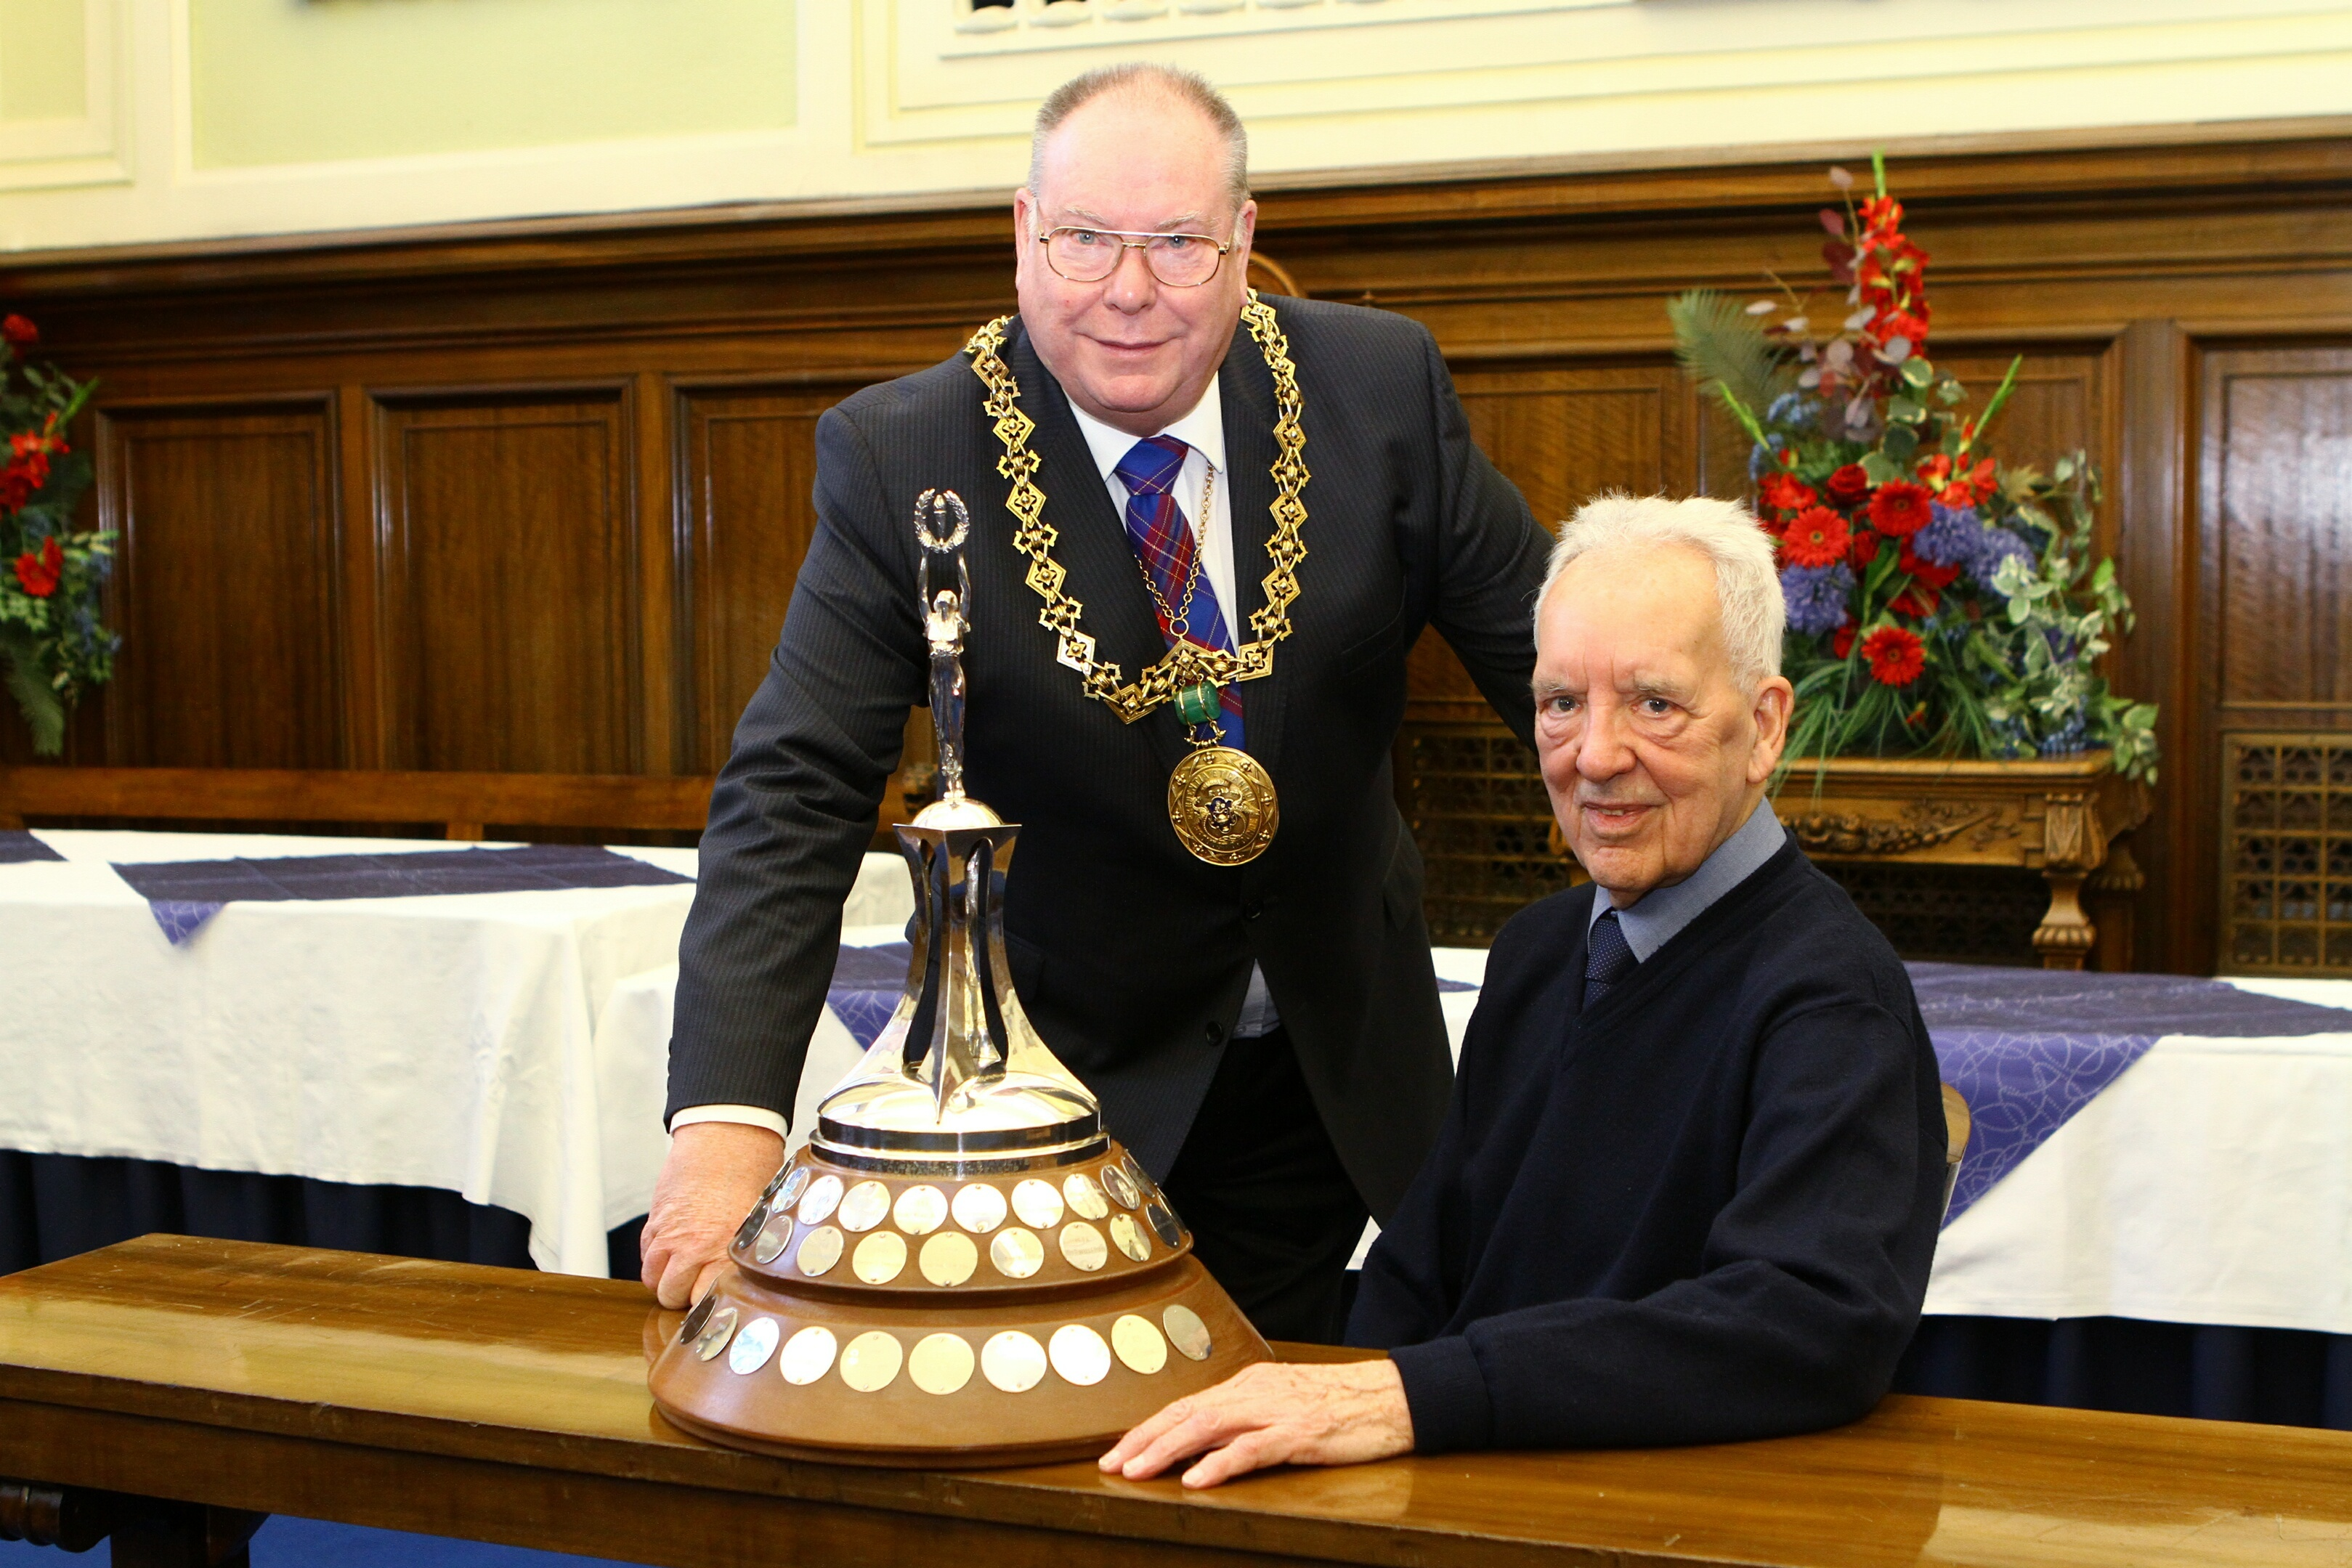 Dundee's Citizen Of The Year 2017, George Roberts, in the city chambers in Dundee with former Lord Provost Bob Duncan and the trophy.